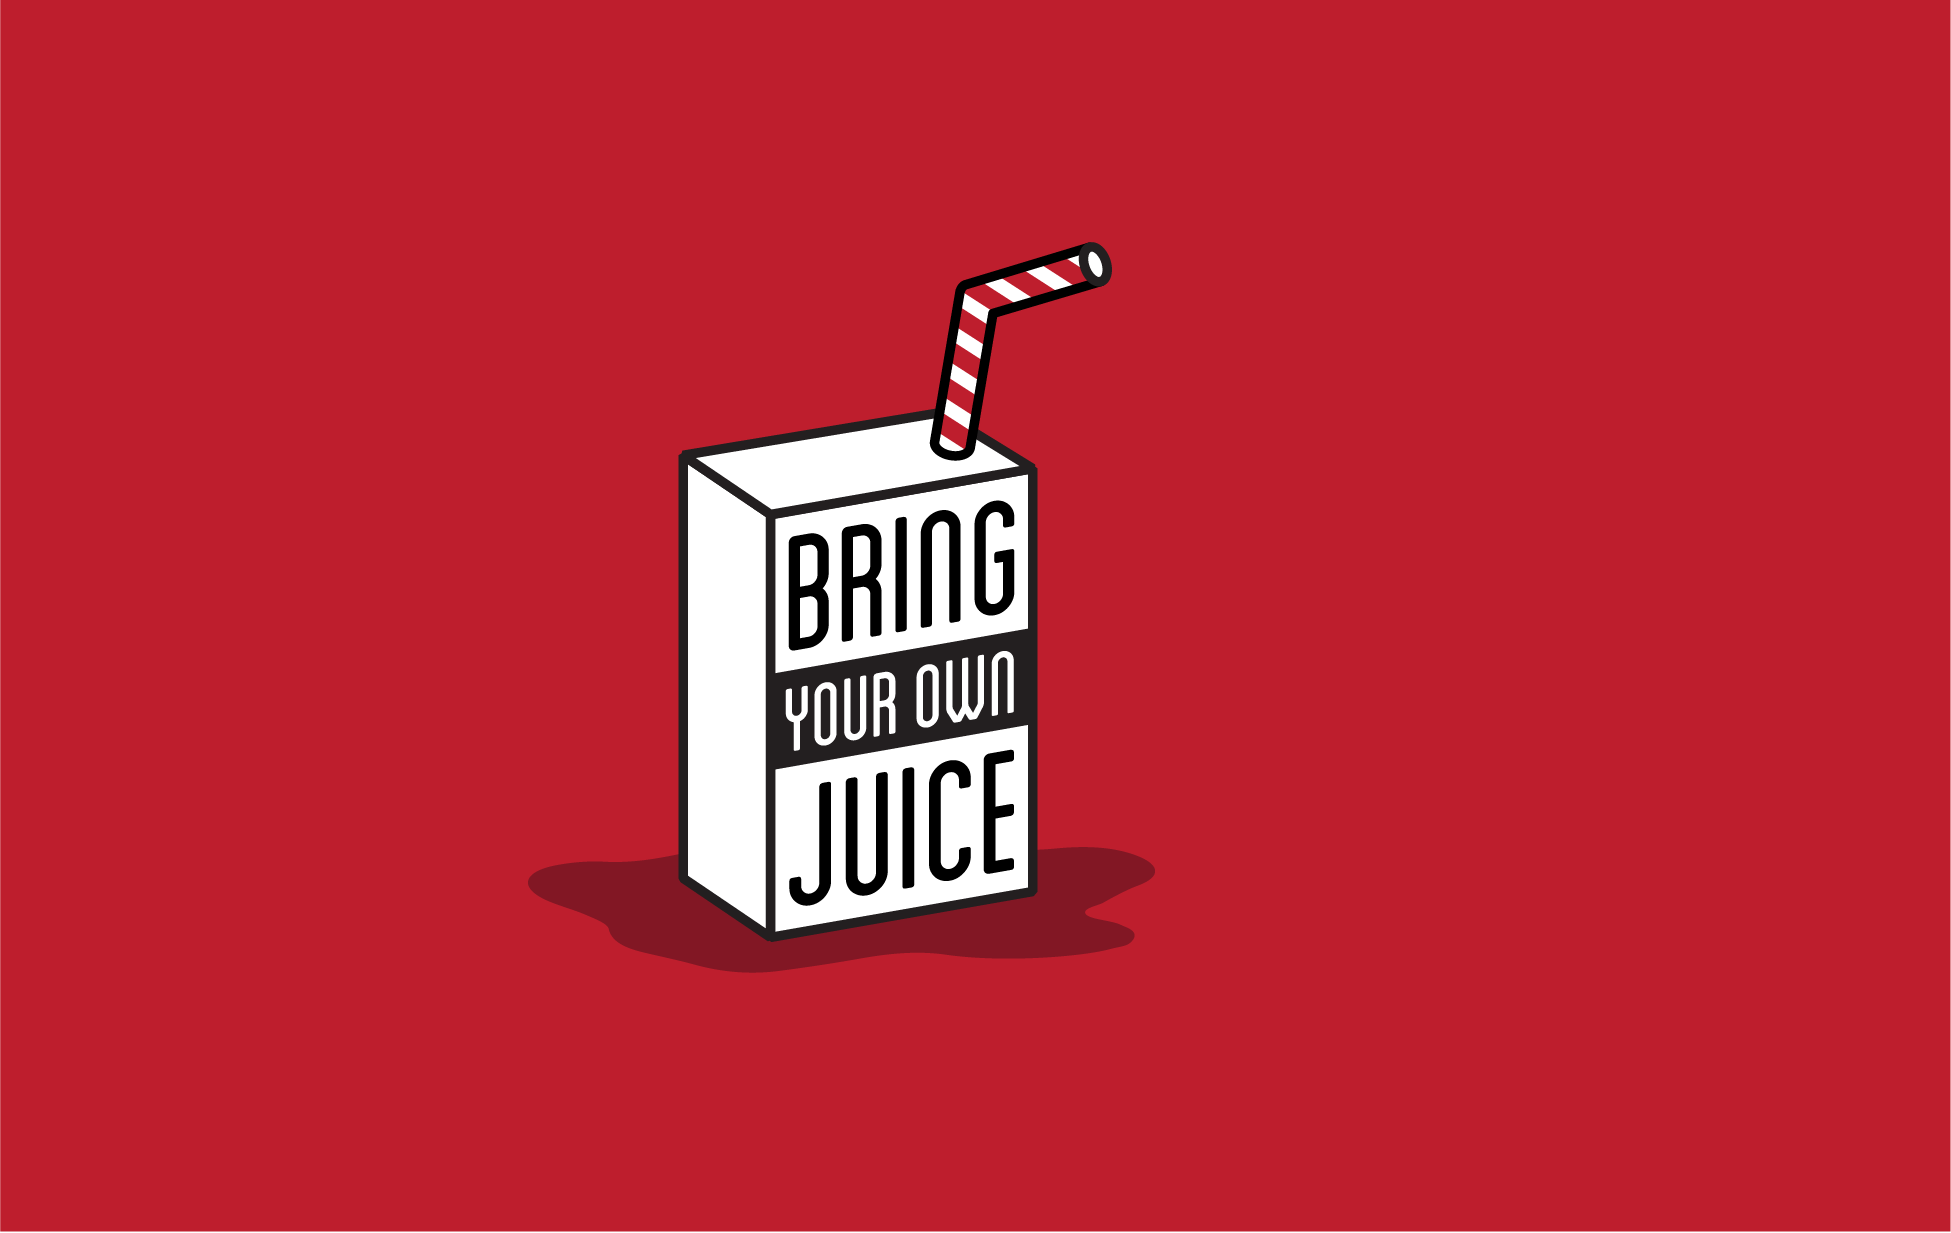 Bring your own juice - LOGO DESIGN // March 2015